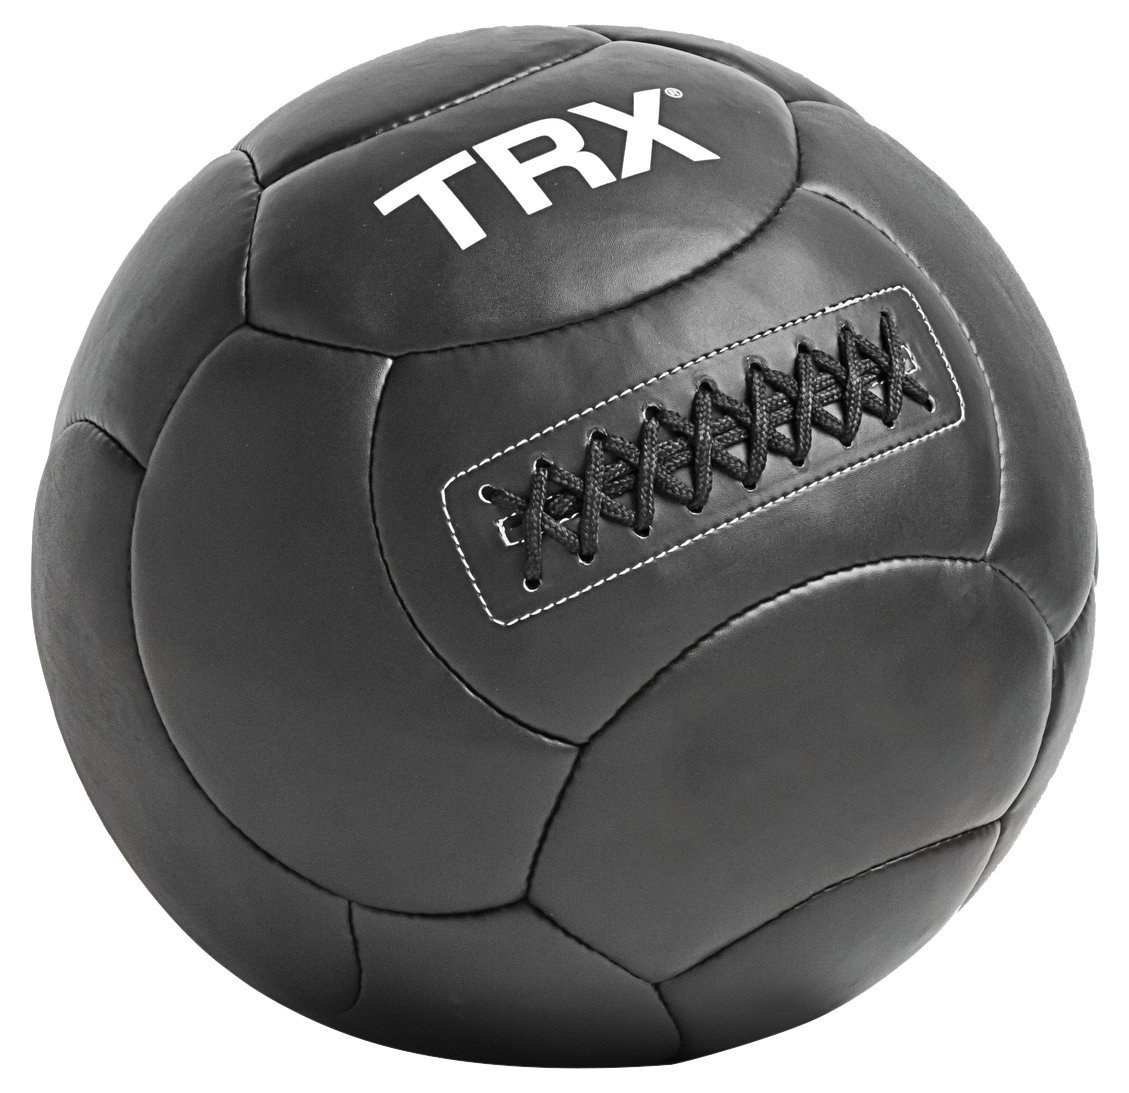 TRX Training Handcrafted Wall Ball with